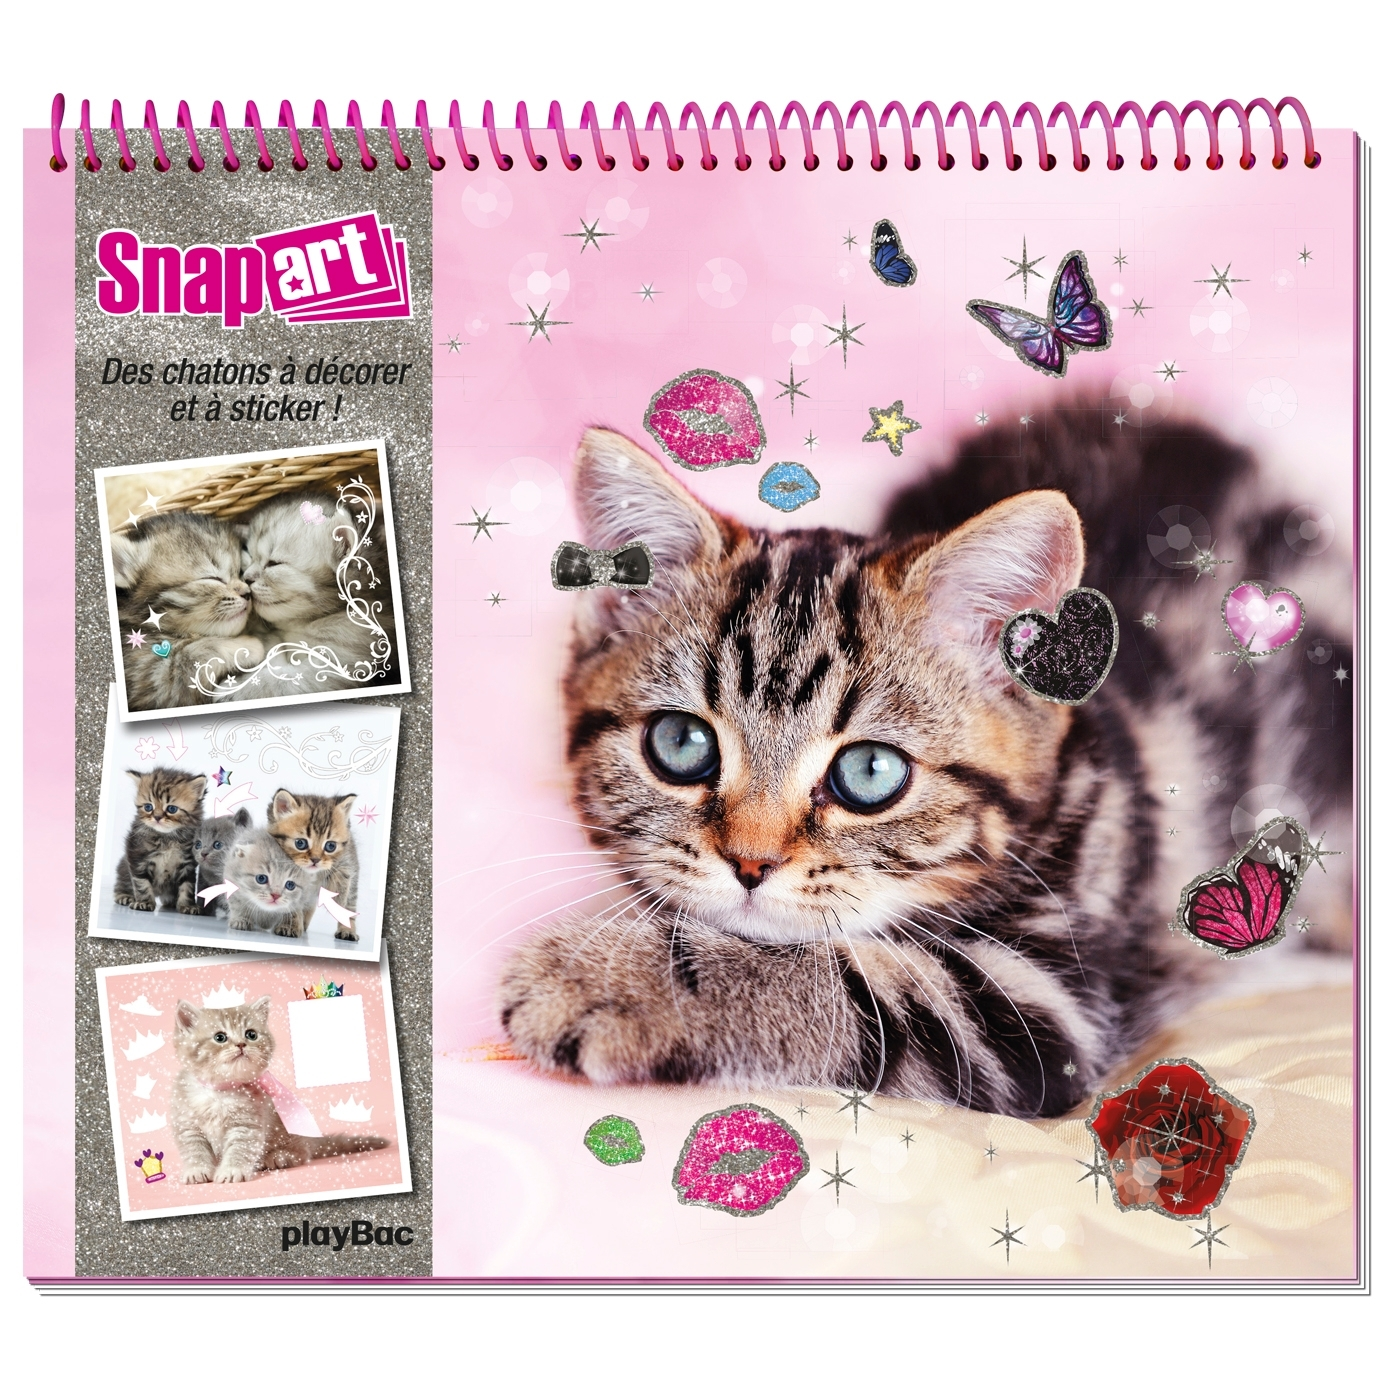 SNAP'ART - CHATONS - DECORE ET STICKE TES CHATONS